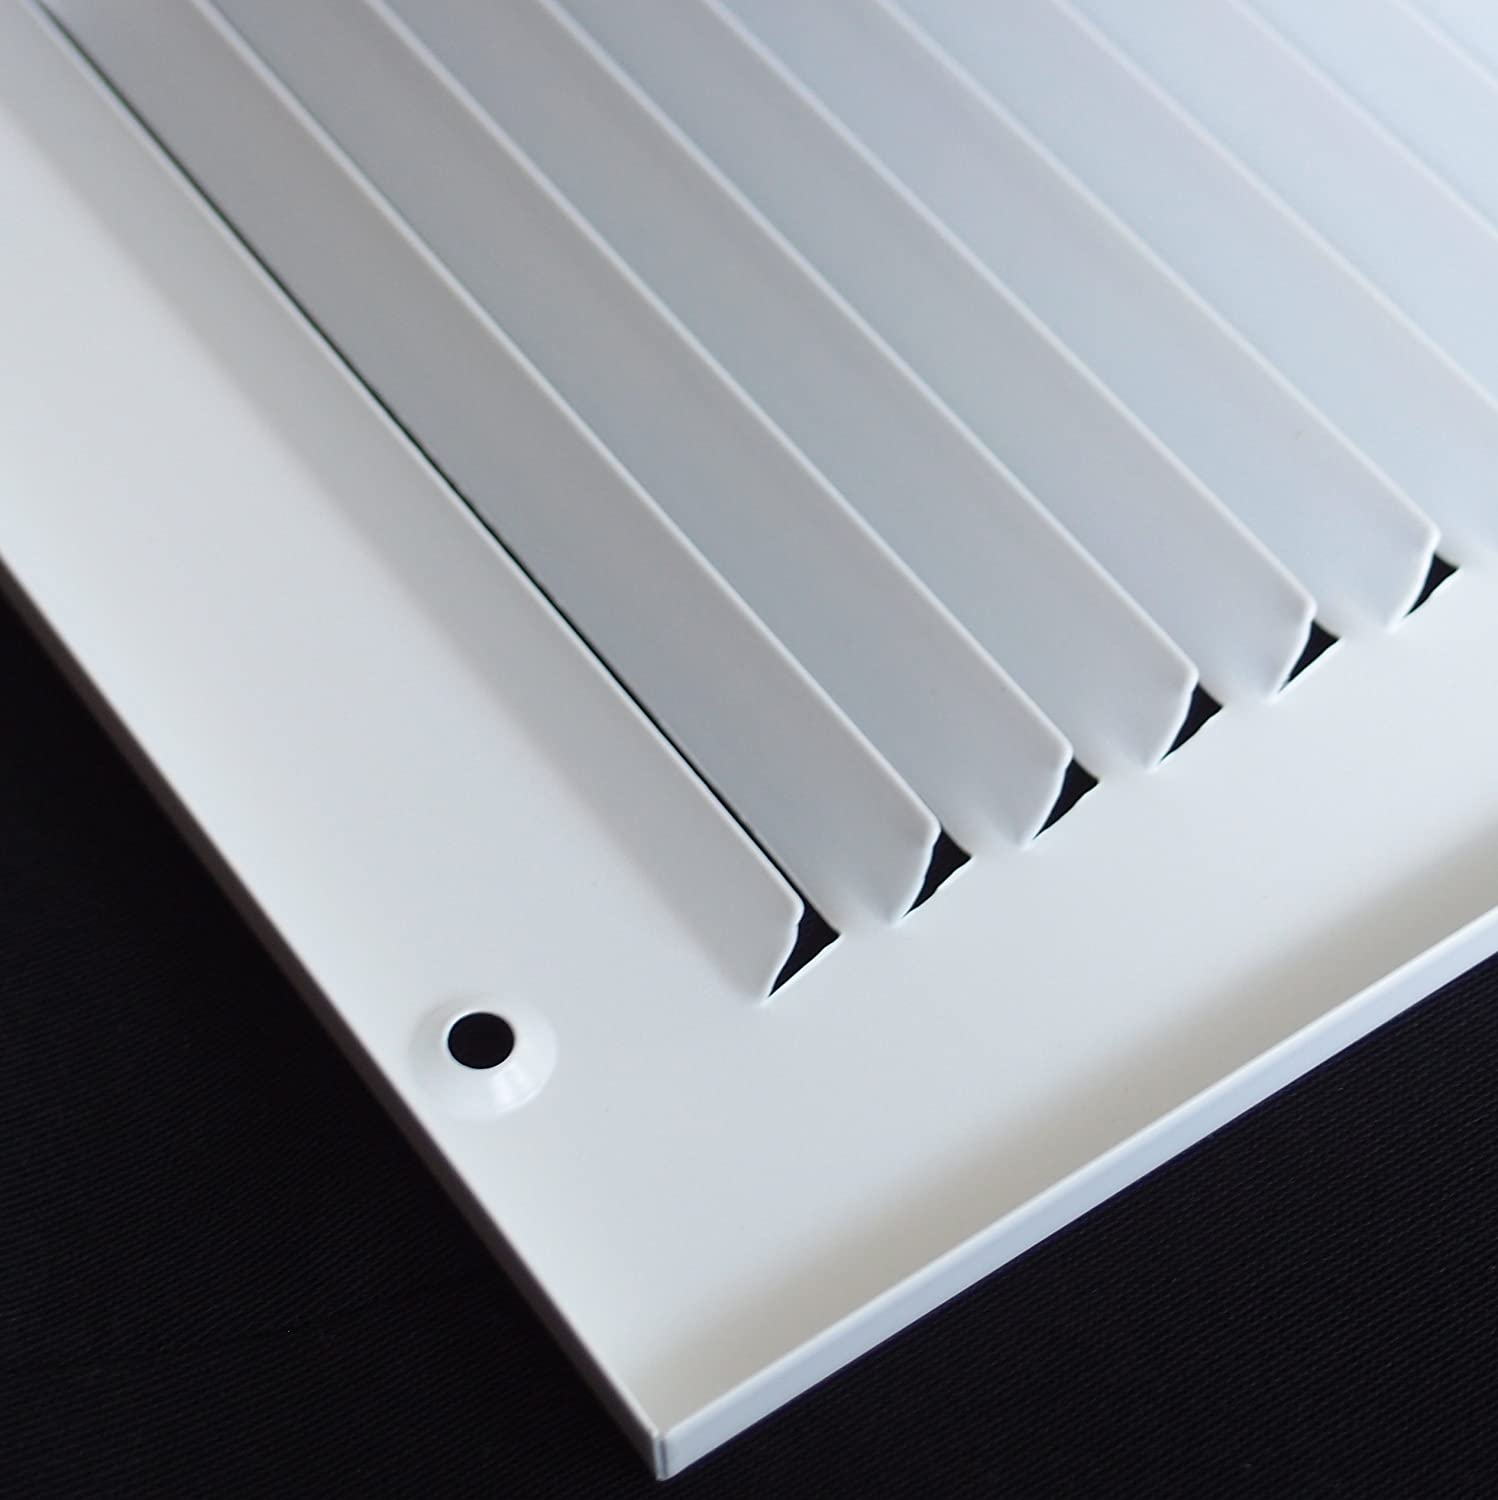 Outer Dimensions: 13.75w X 21.75h Sidewall and Ceiling 12w X 20h Steel Return Air Grilles HVAC Duct Cover White